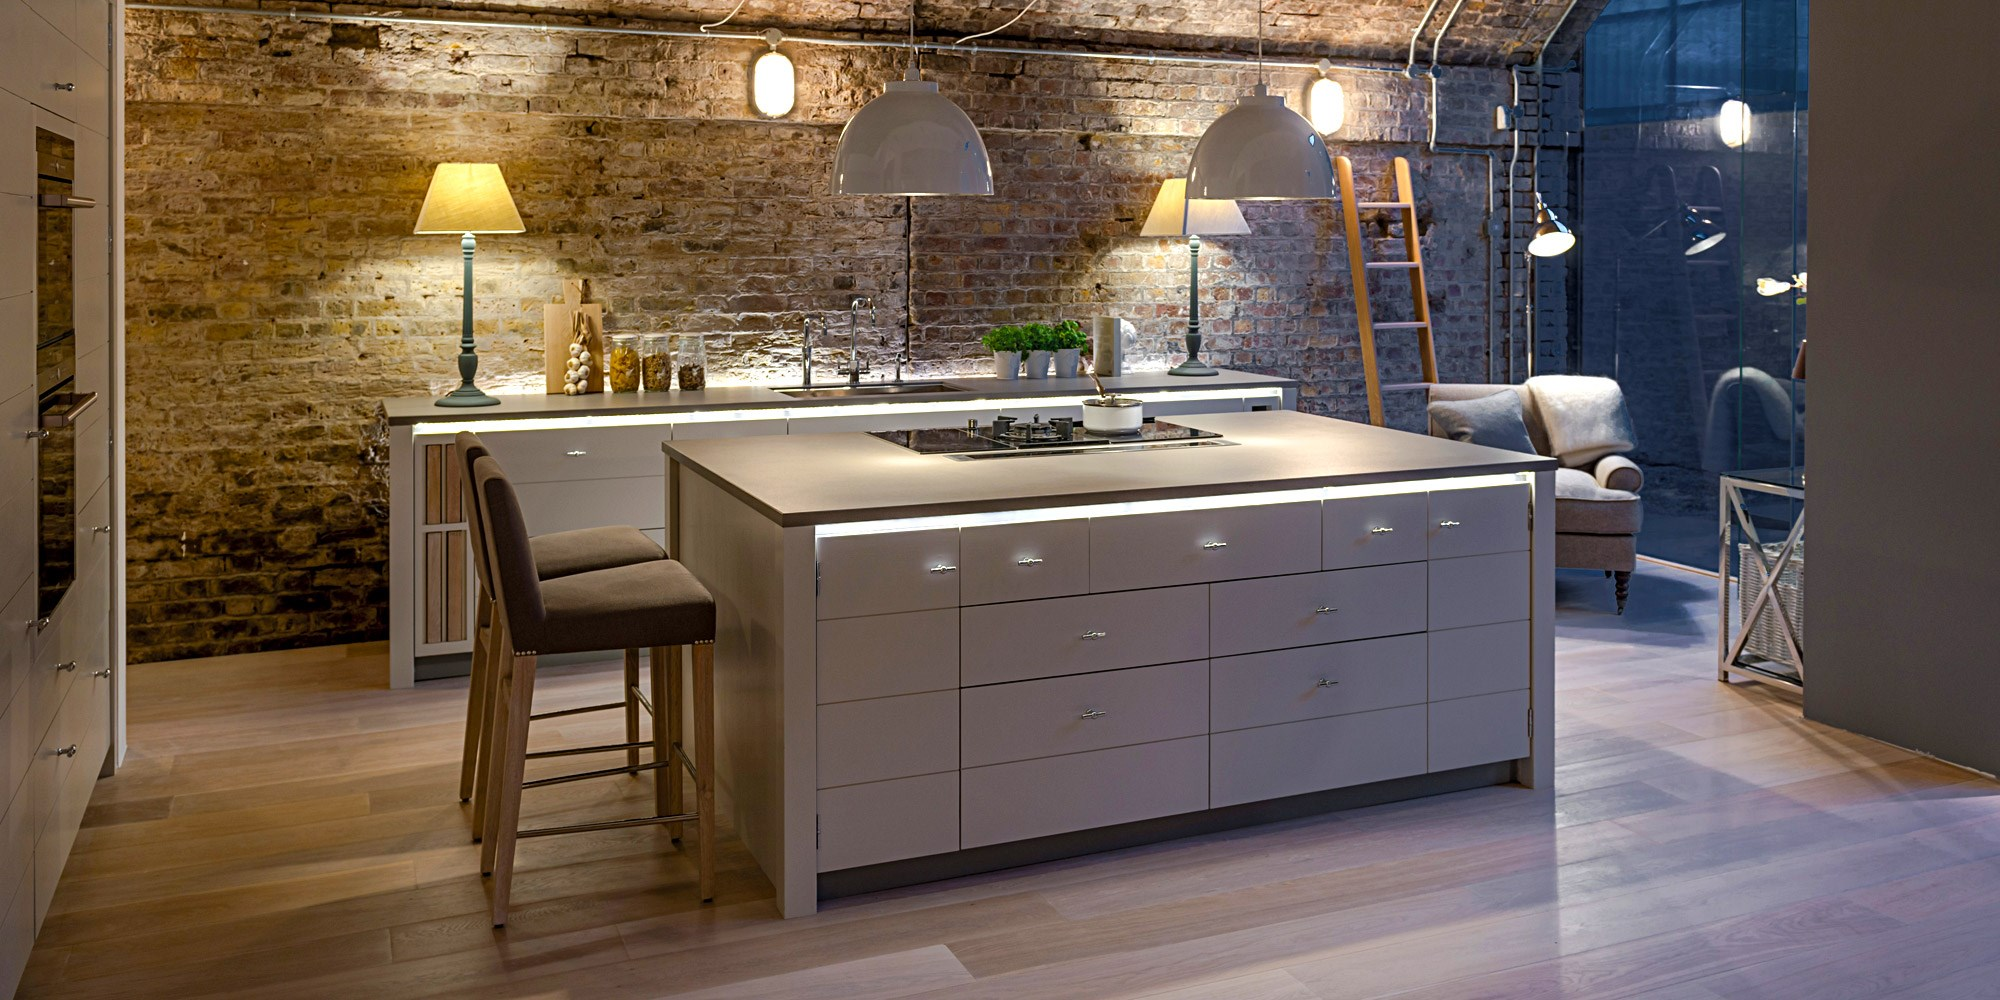 Limehouse Kitchen Neptune: Neptune Kitchens At Channel Island Ceramics, Guernsey